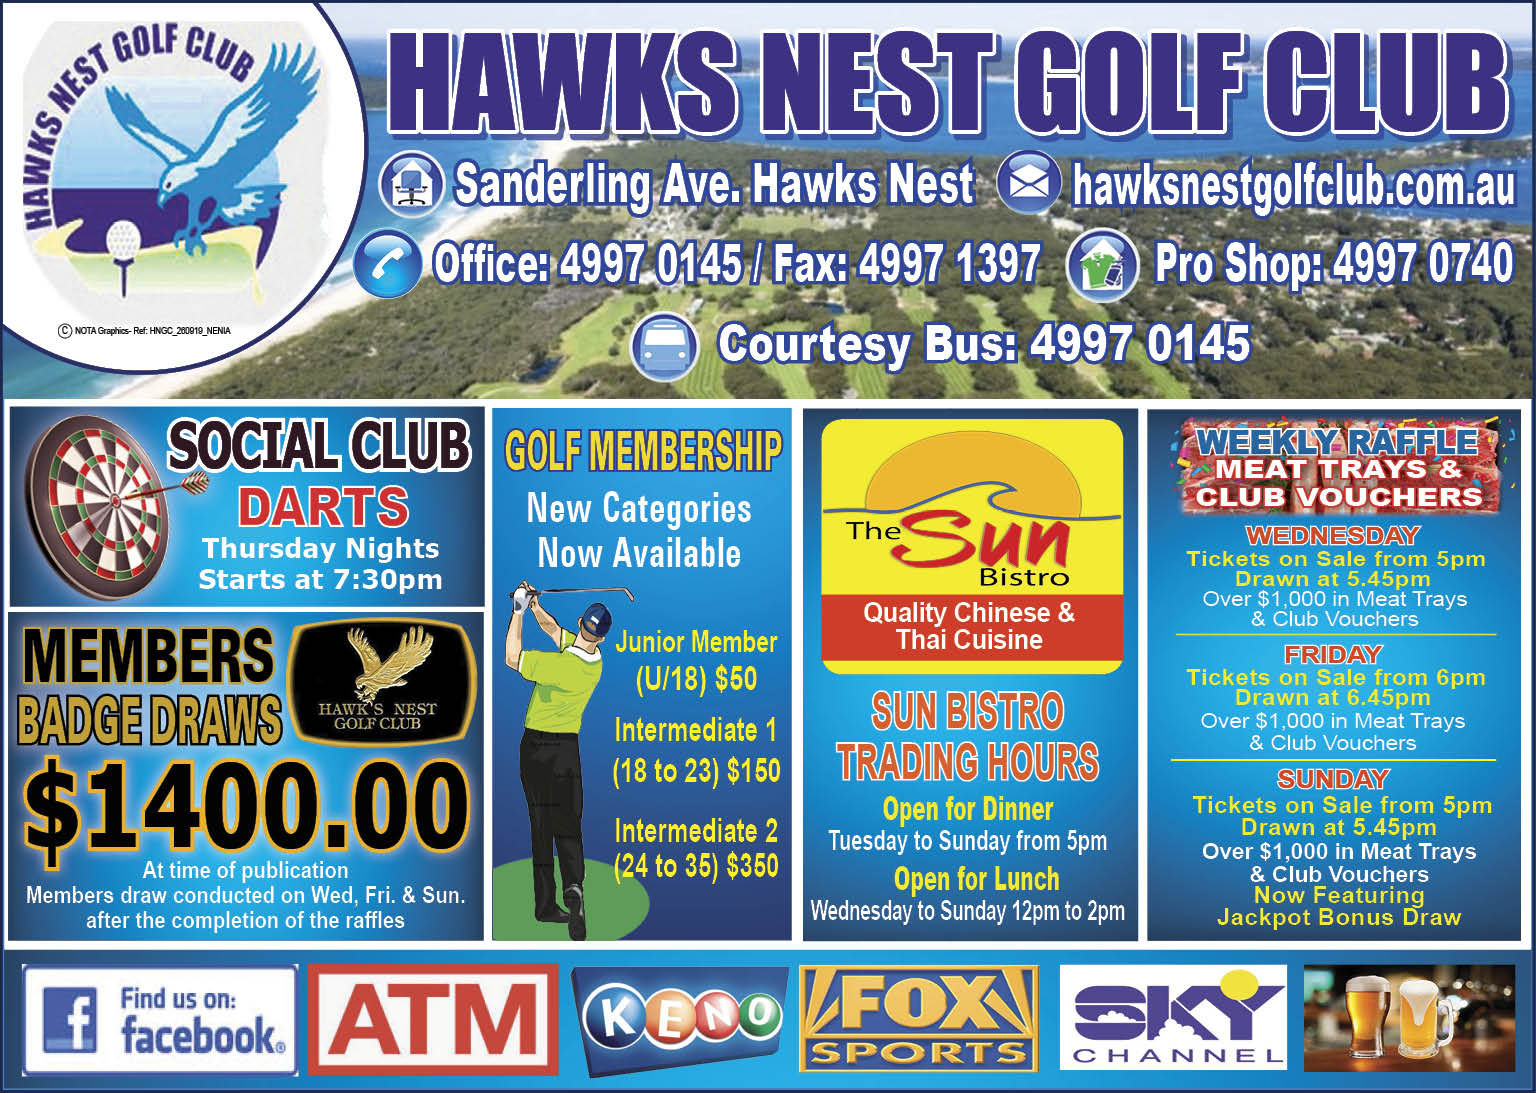 Hawks Nest Golf Club